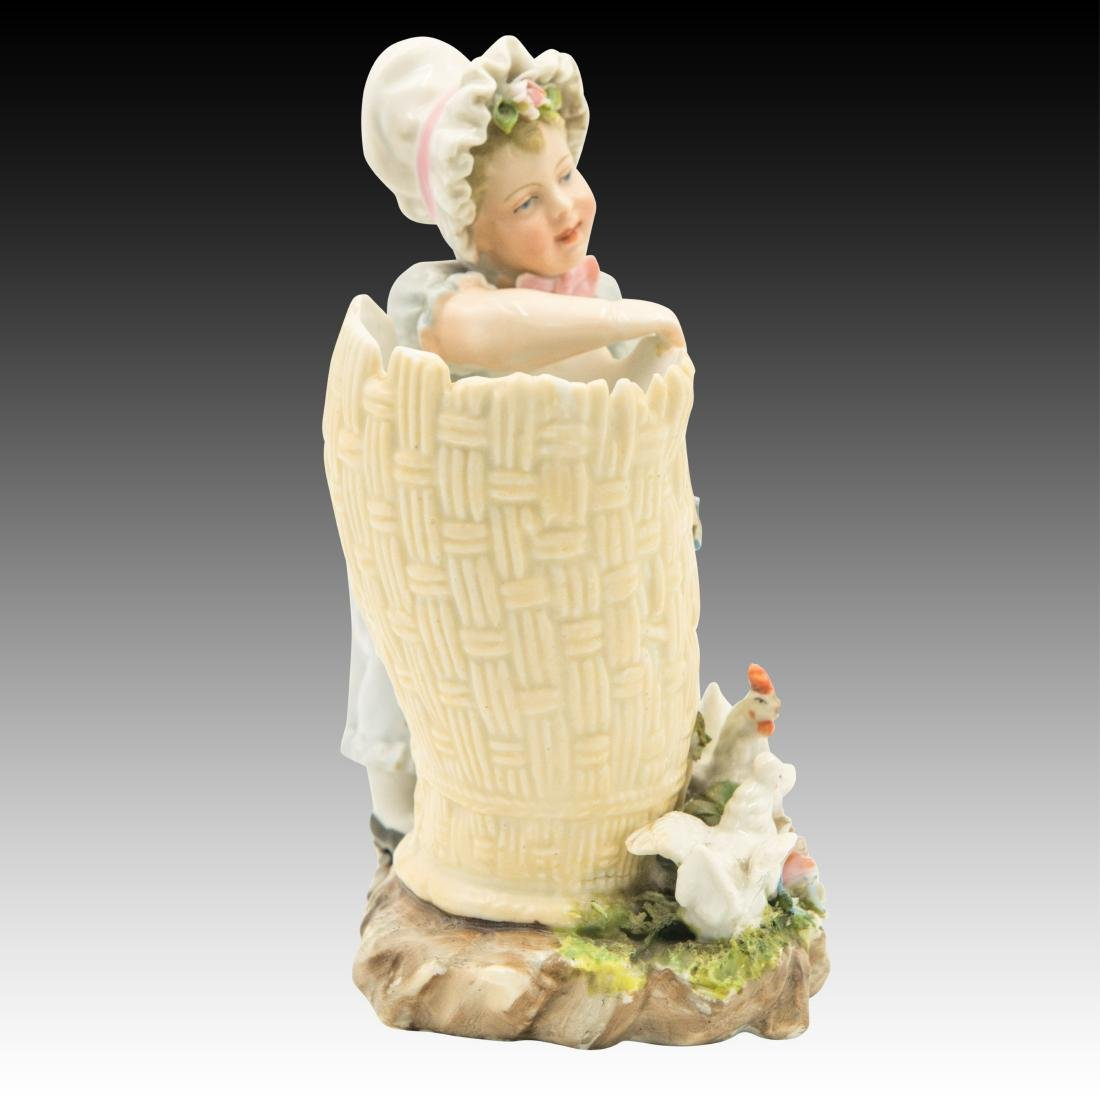 Young Girl Leaning on a Basket Figurine - 4